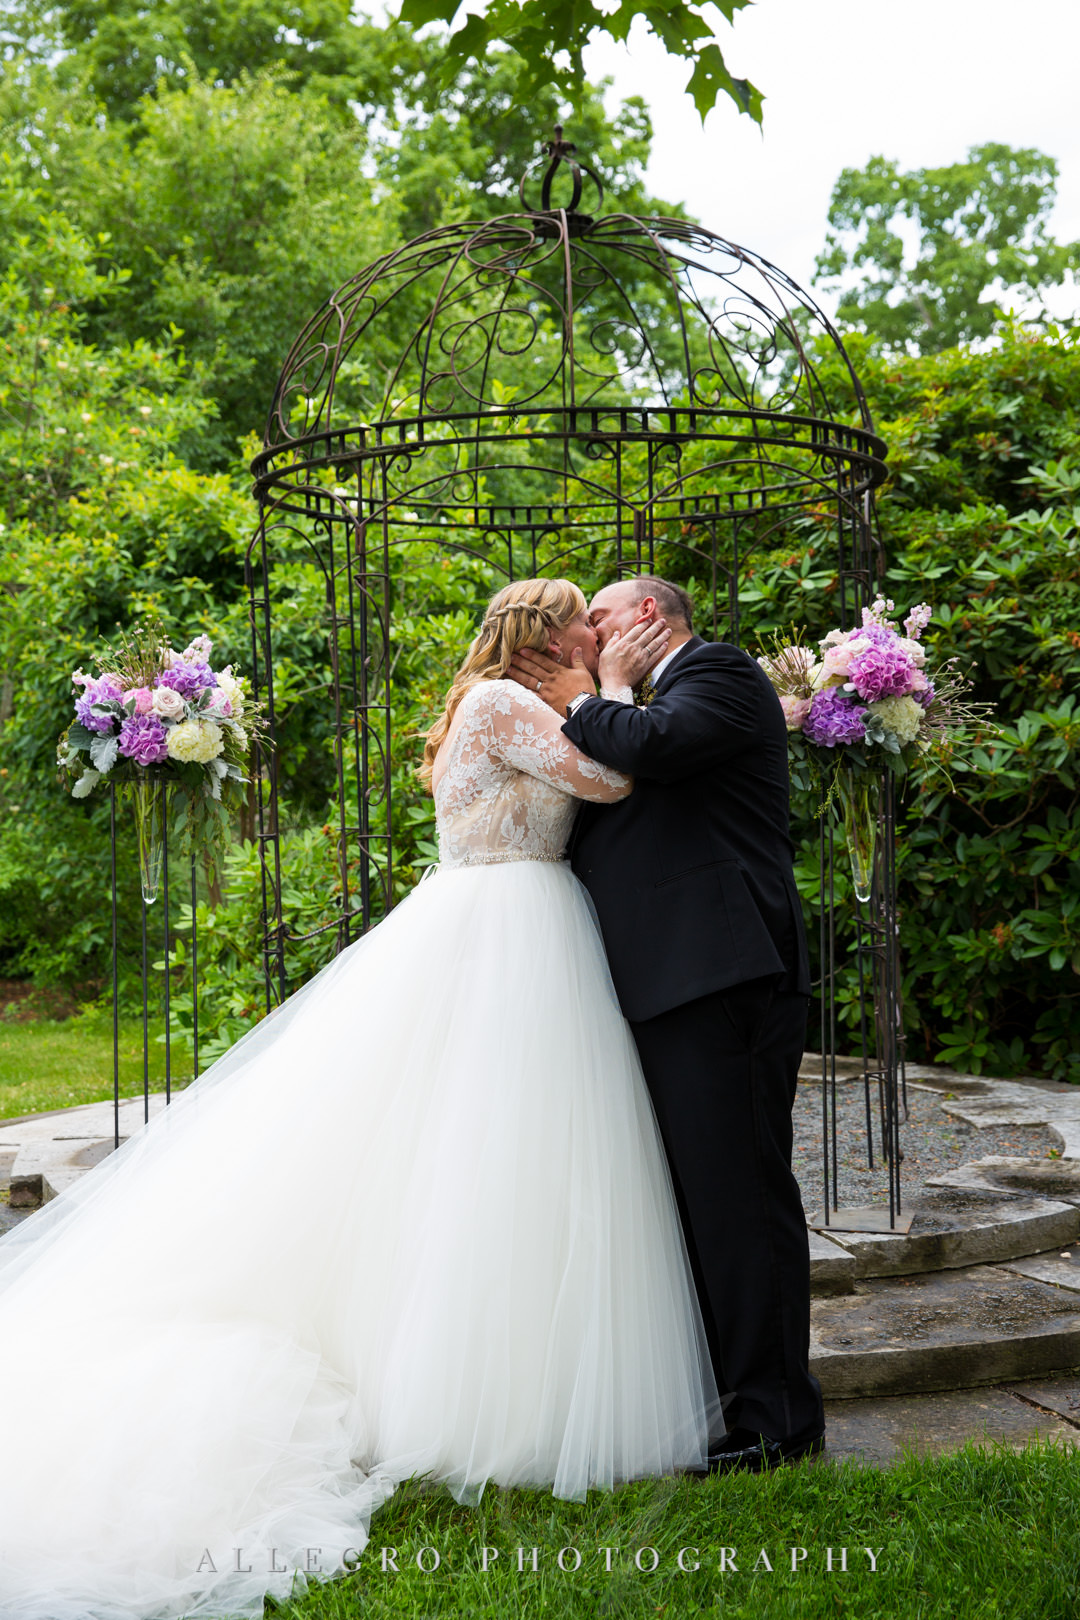 Wedding couple kiss at alter | Allegro Photography